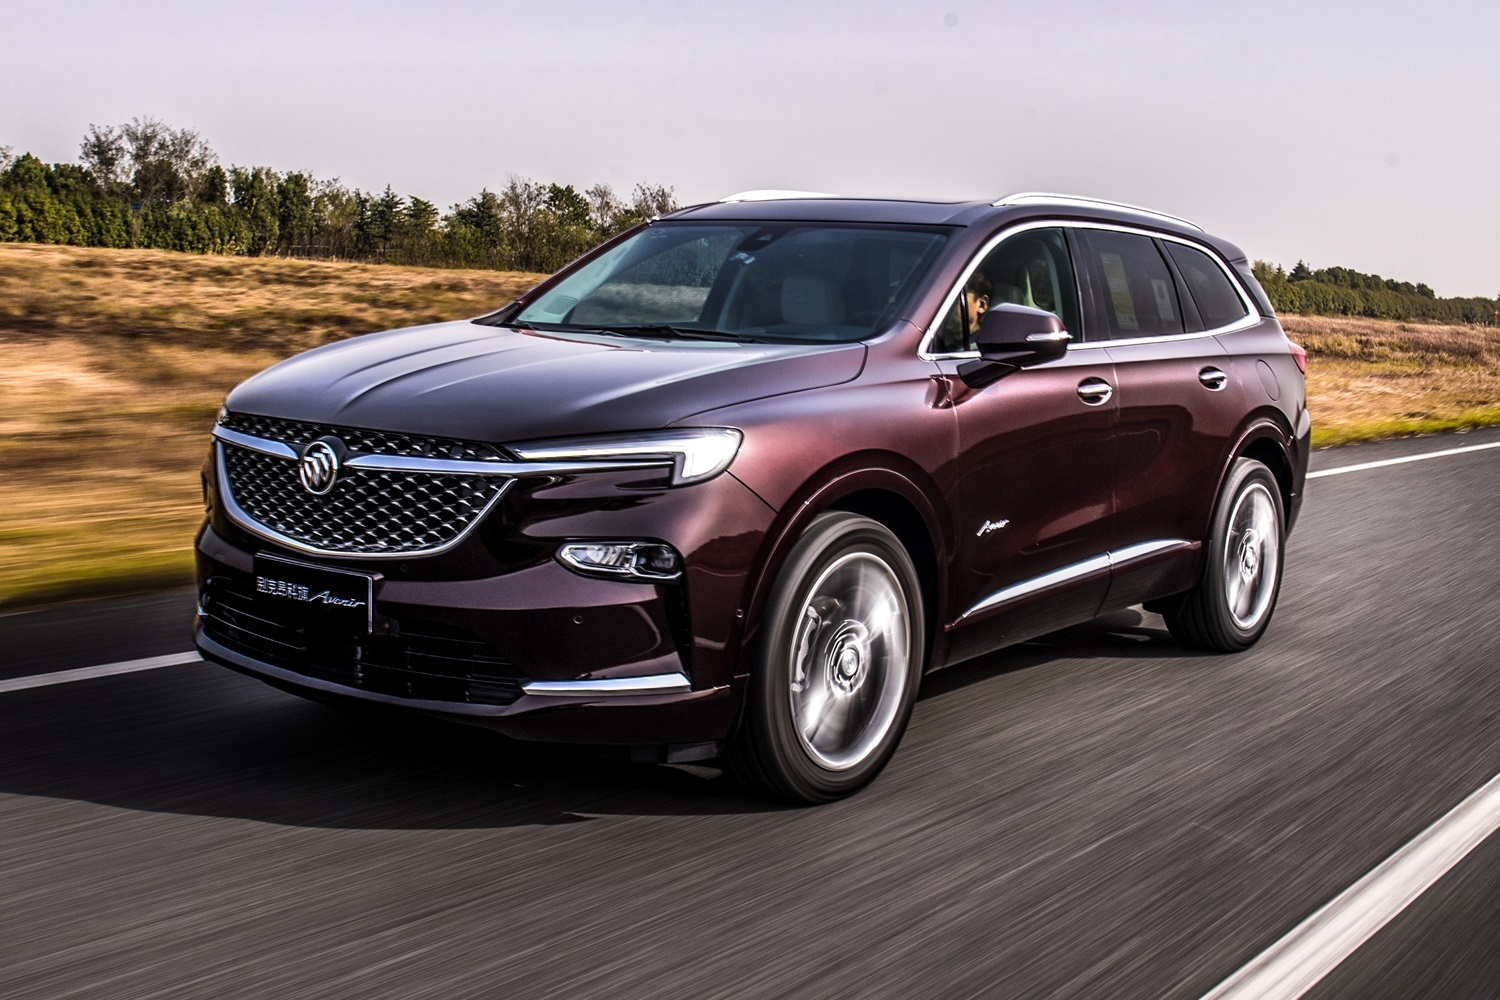 Gm Shows All-New China-Spec Buick Enclave Avenir | Gm Authority New 2021 Buick Enclave Cost, Build, Bolt Pattern